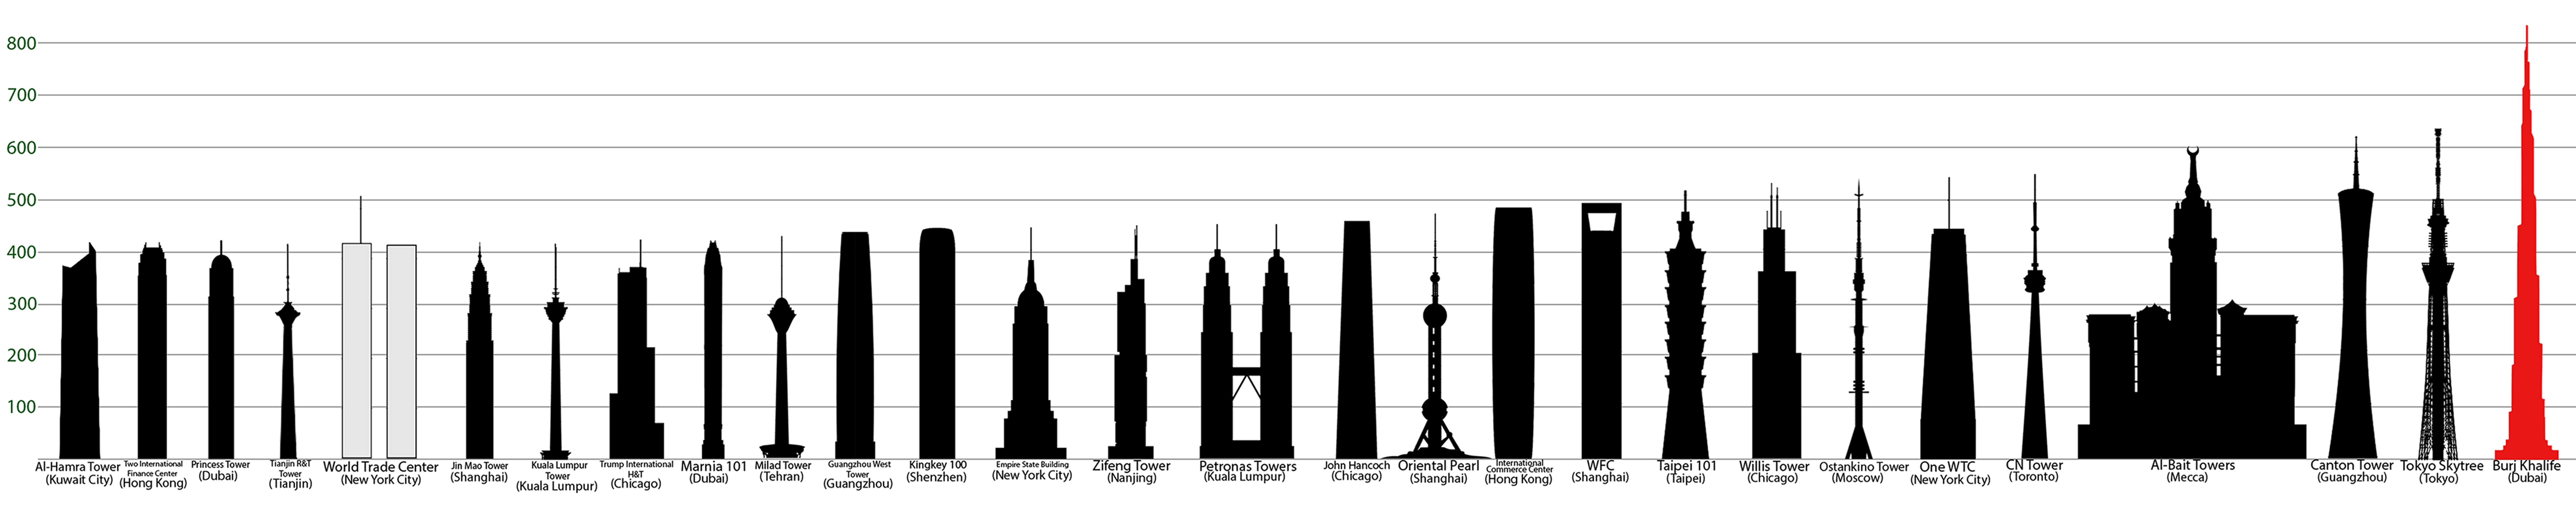 http://upload.wikimedia.org/wikipedia/commons/f/f7/The_Tallest_Buildings_in_the_world.png